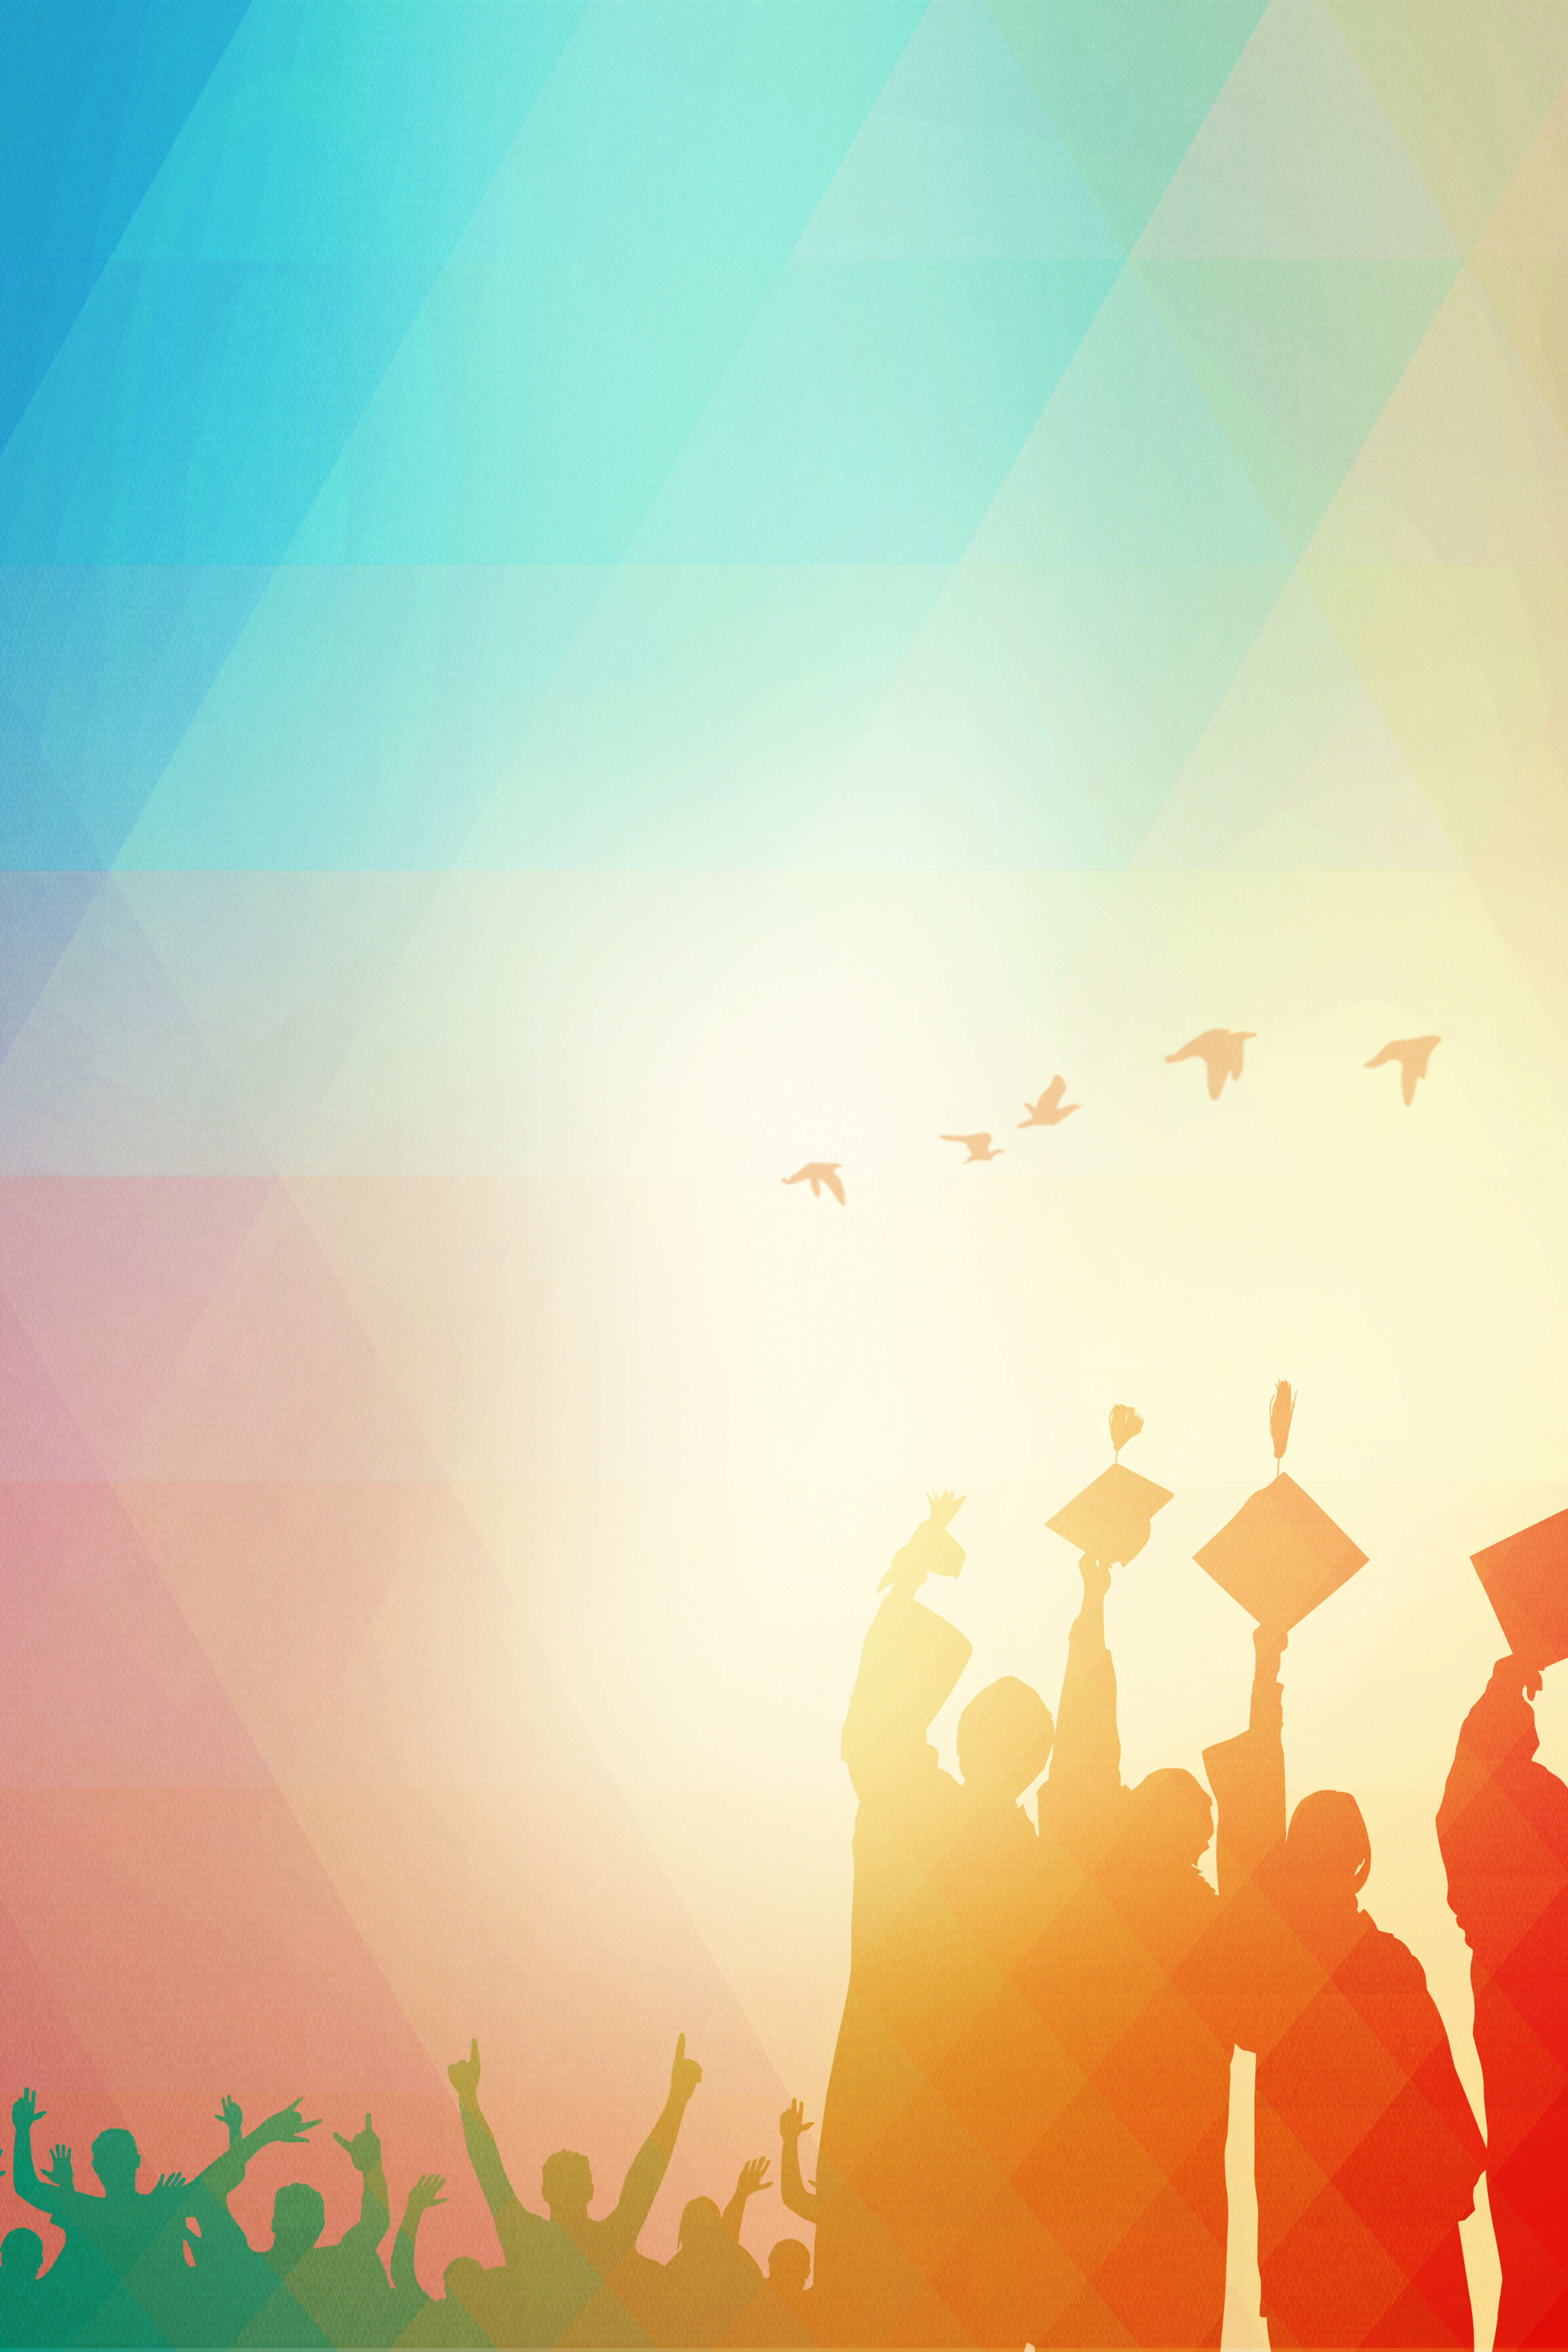 youth background graduation season poster background